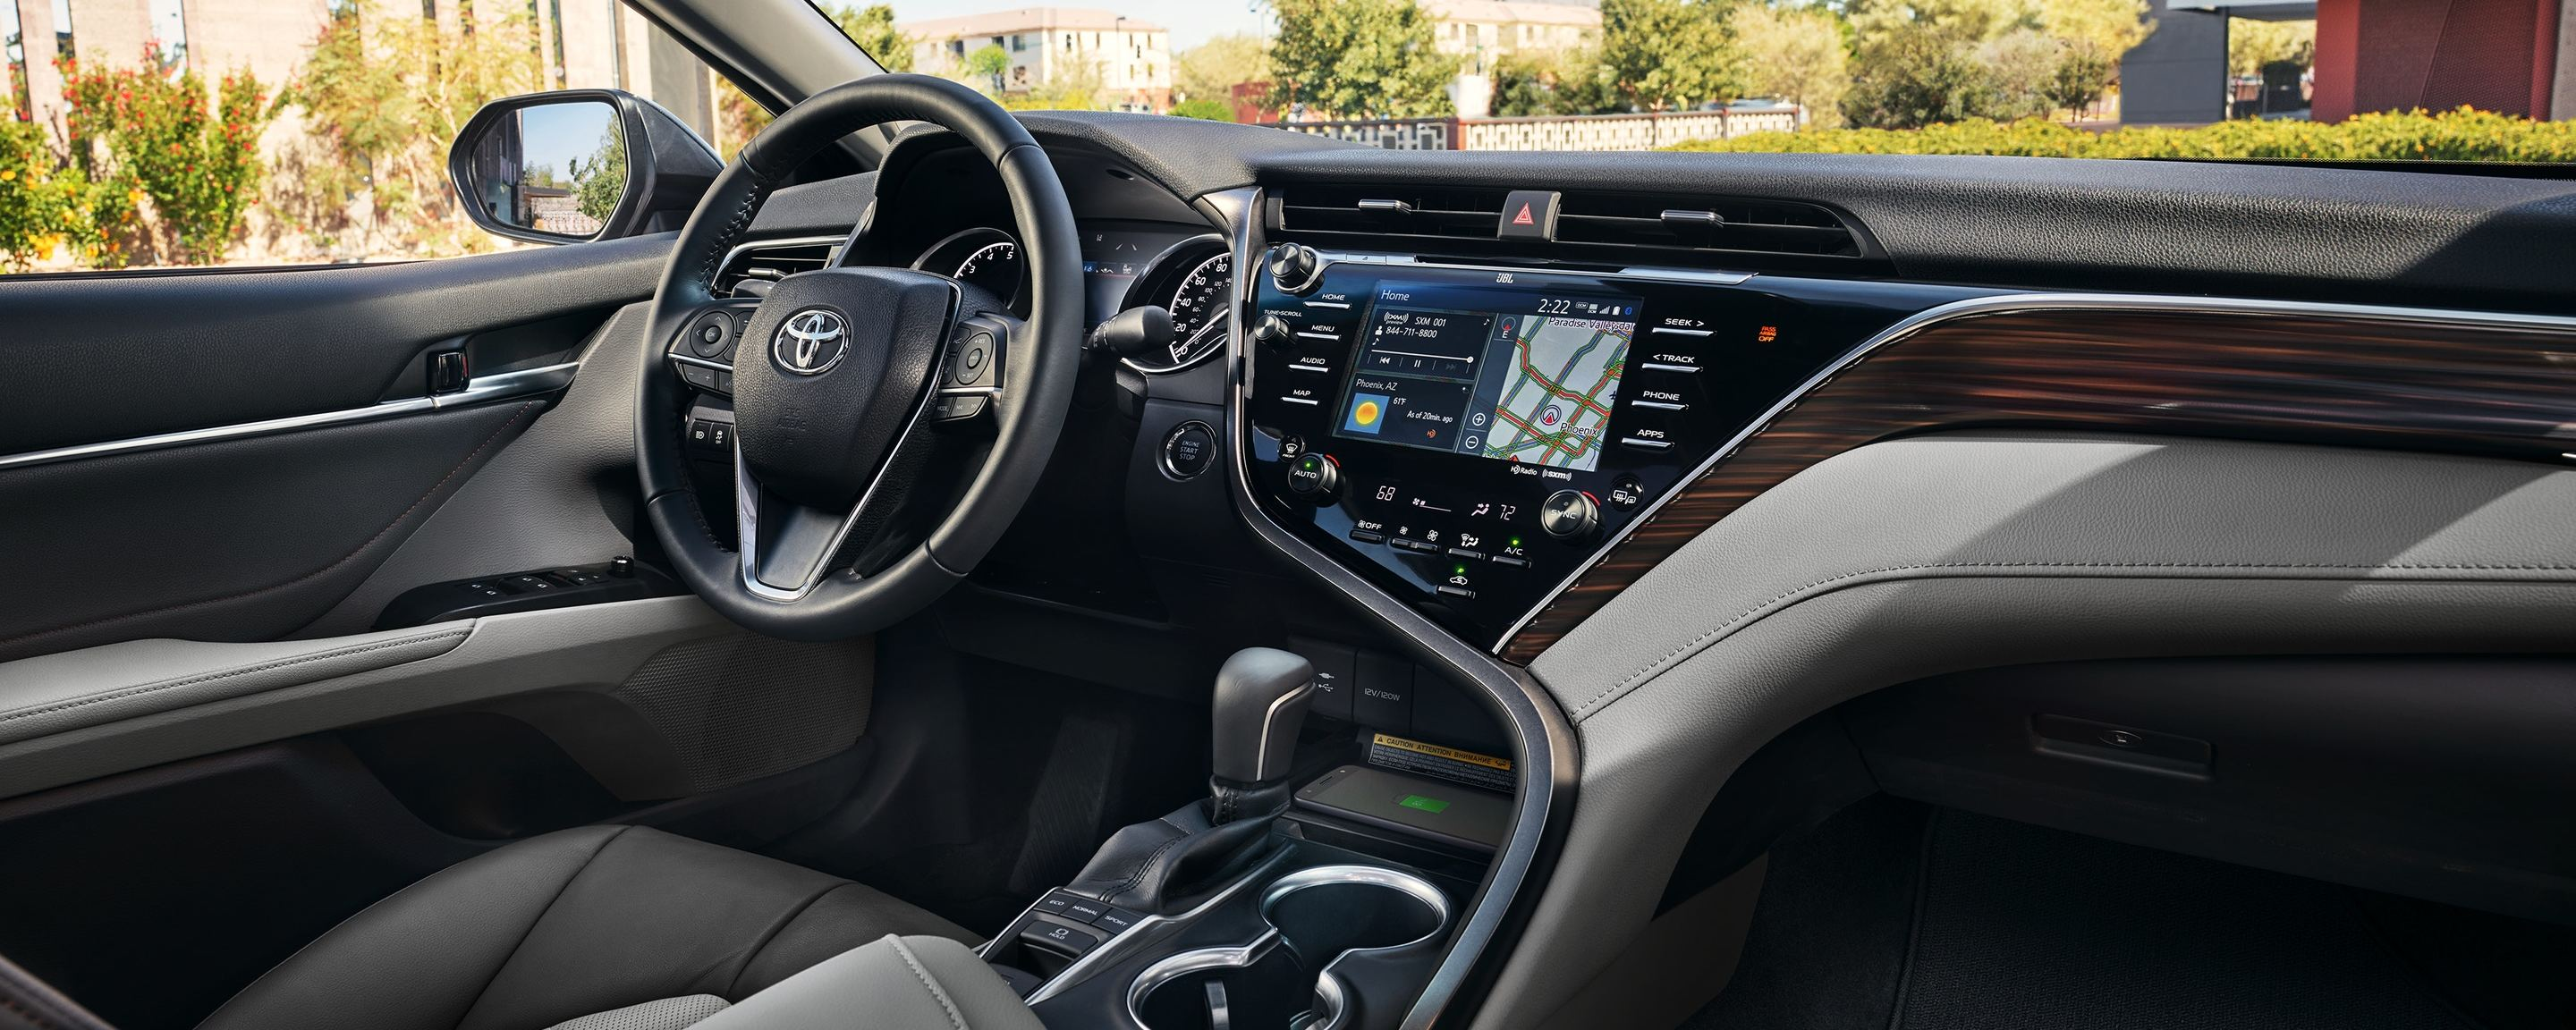 Fashion Meets Function Inside the 2020 Camry